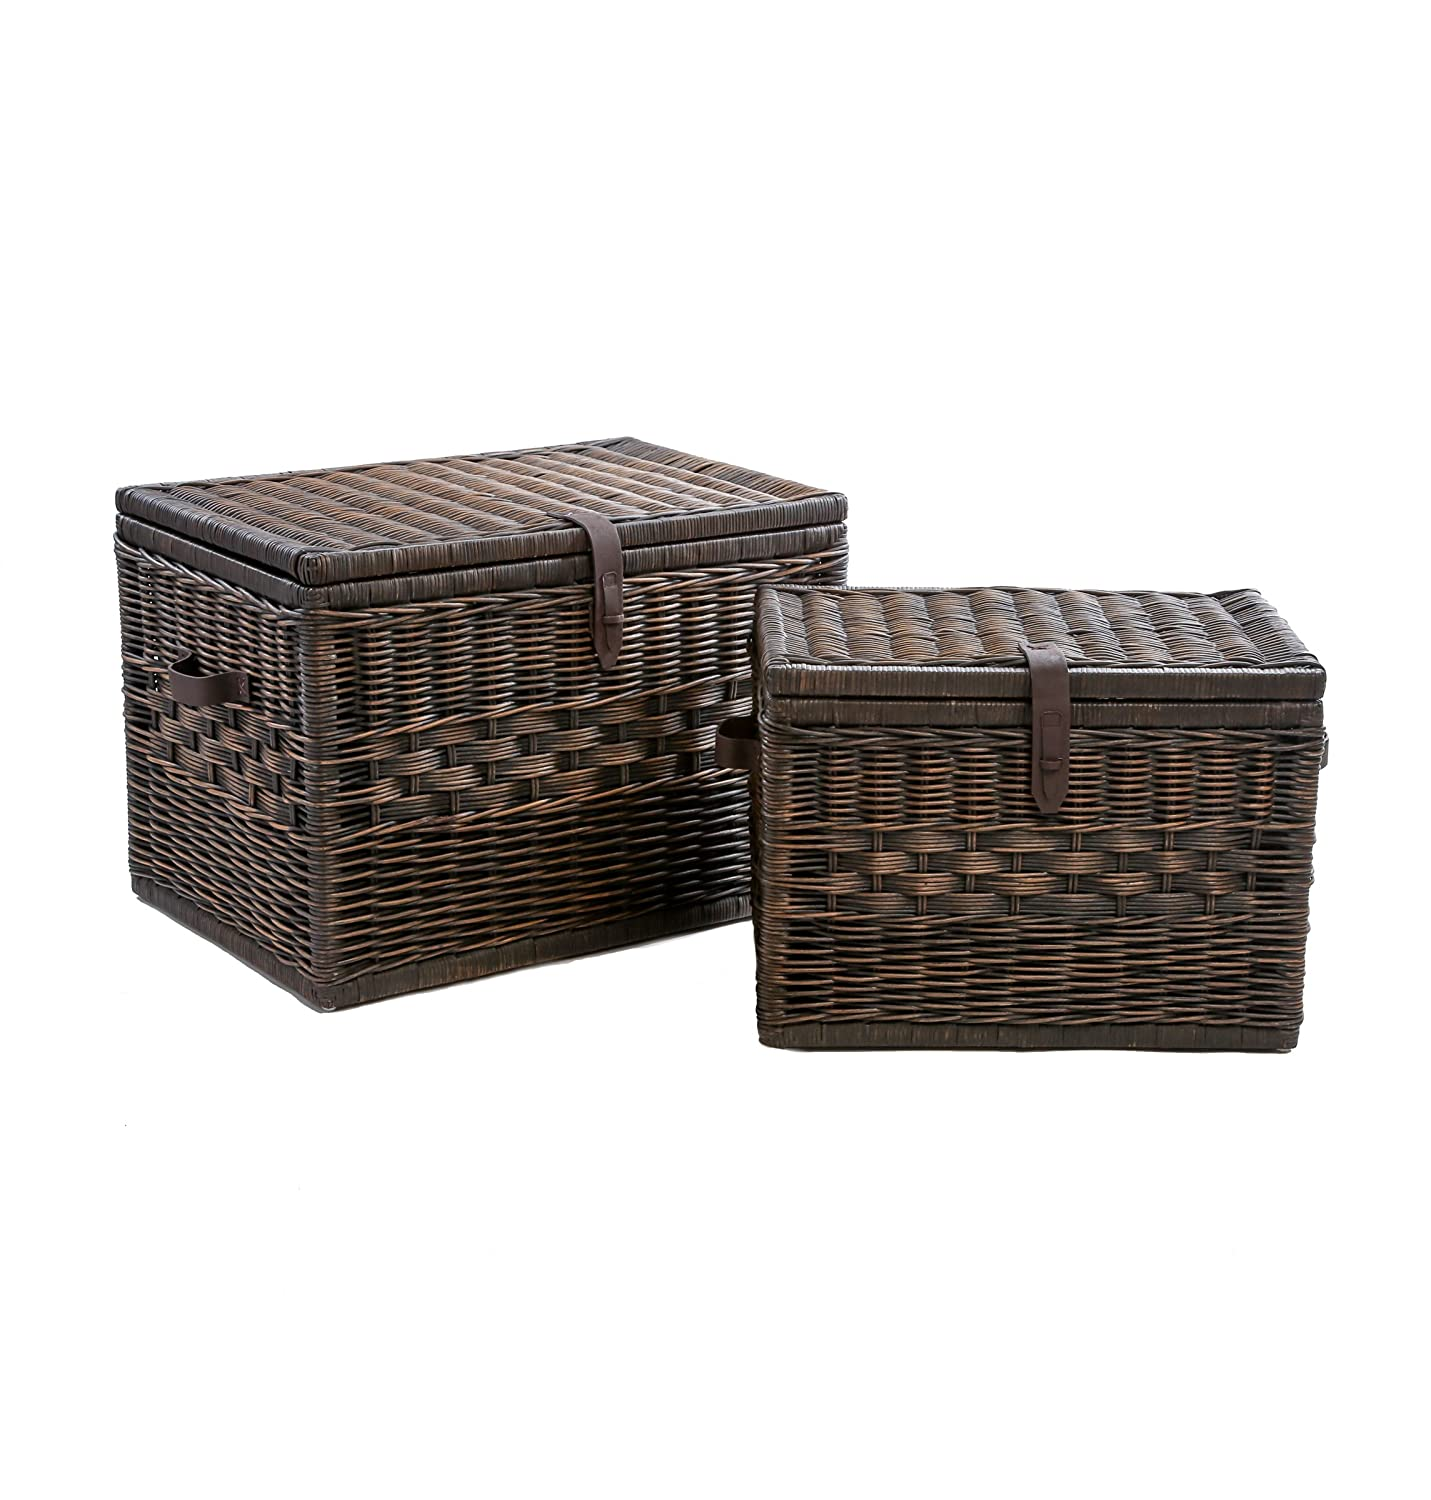 Amazon The Basket Lady Deep Wicker Storage Trunk